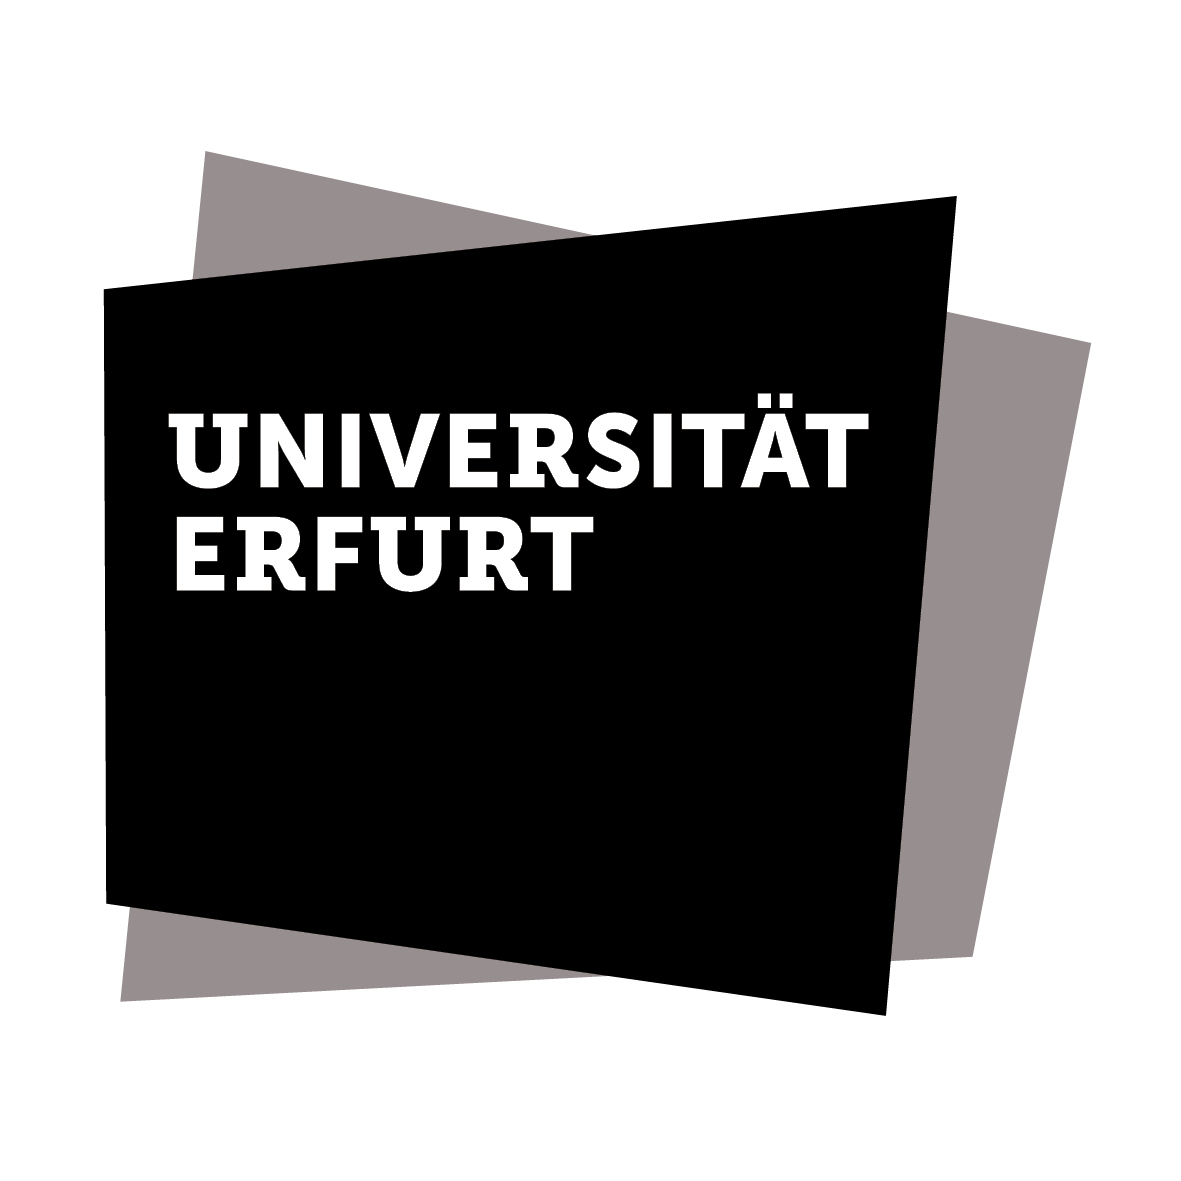 Logo of University of Erfurt